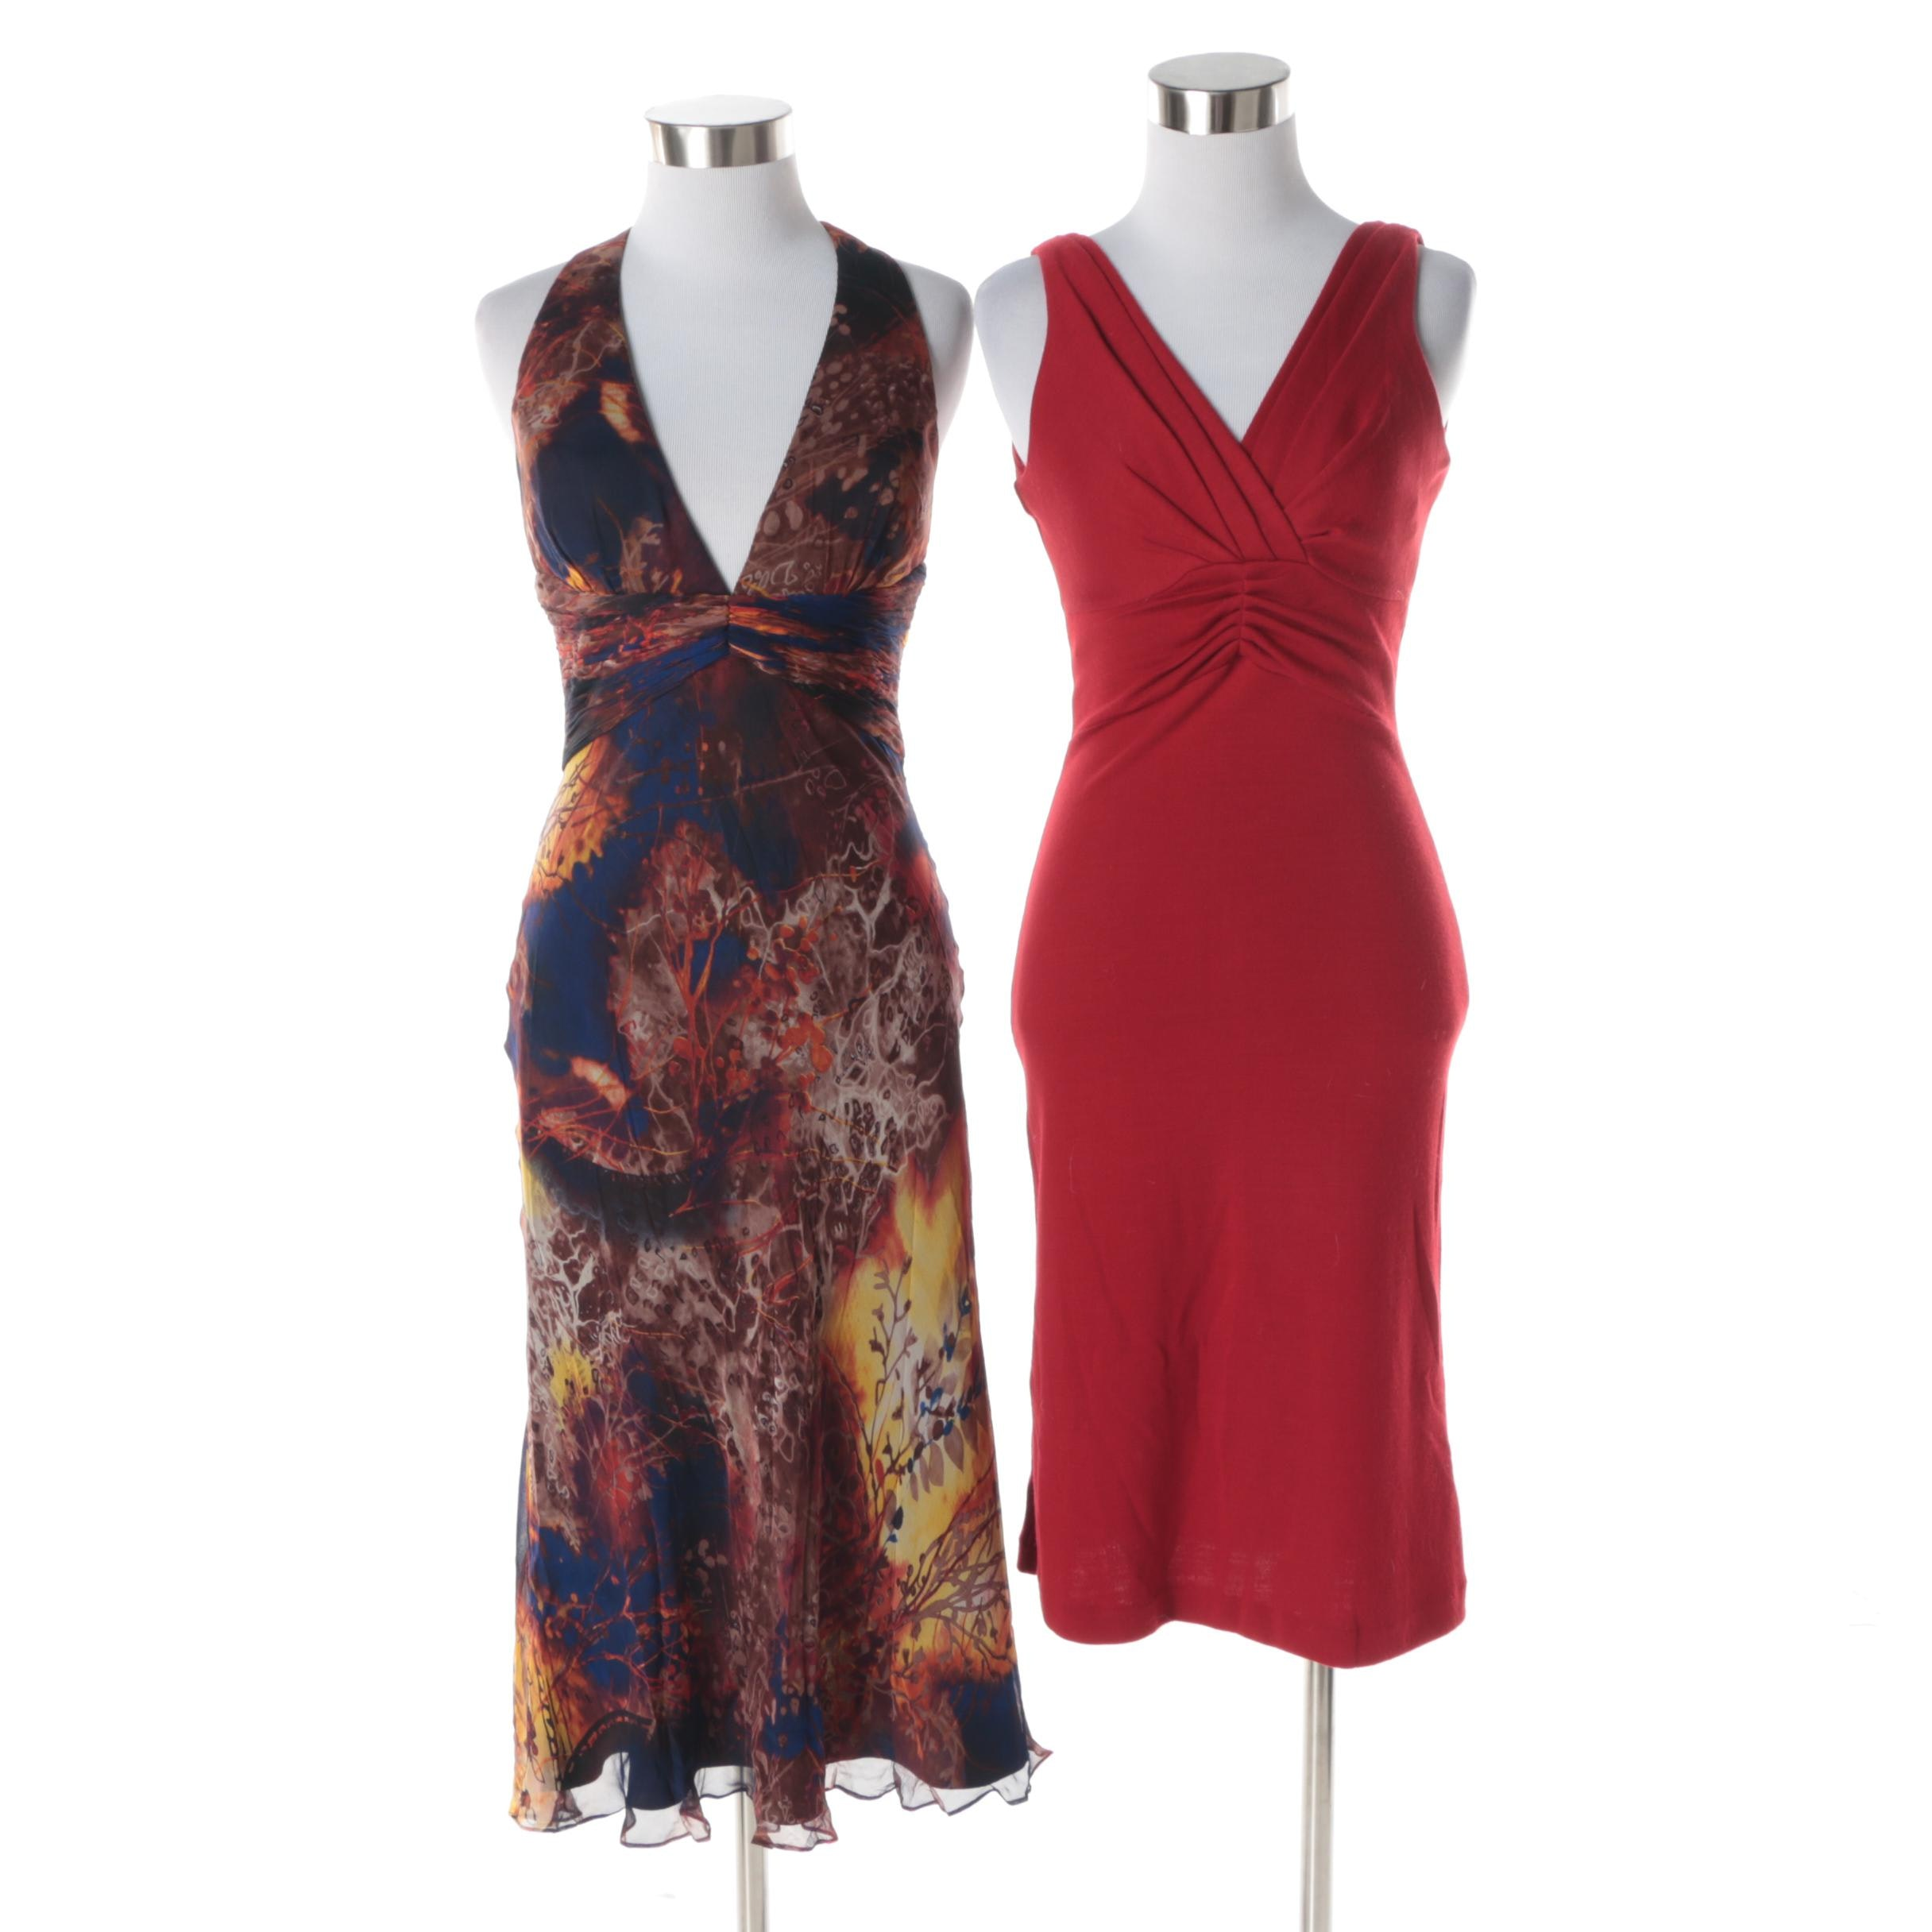 Banana Republic and Morrell Maxie Sleeveless Dresses